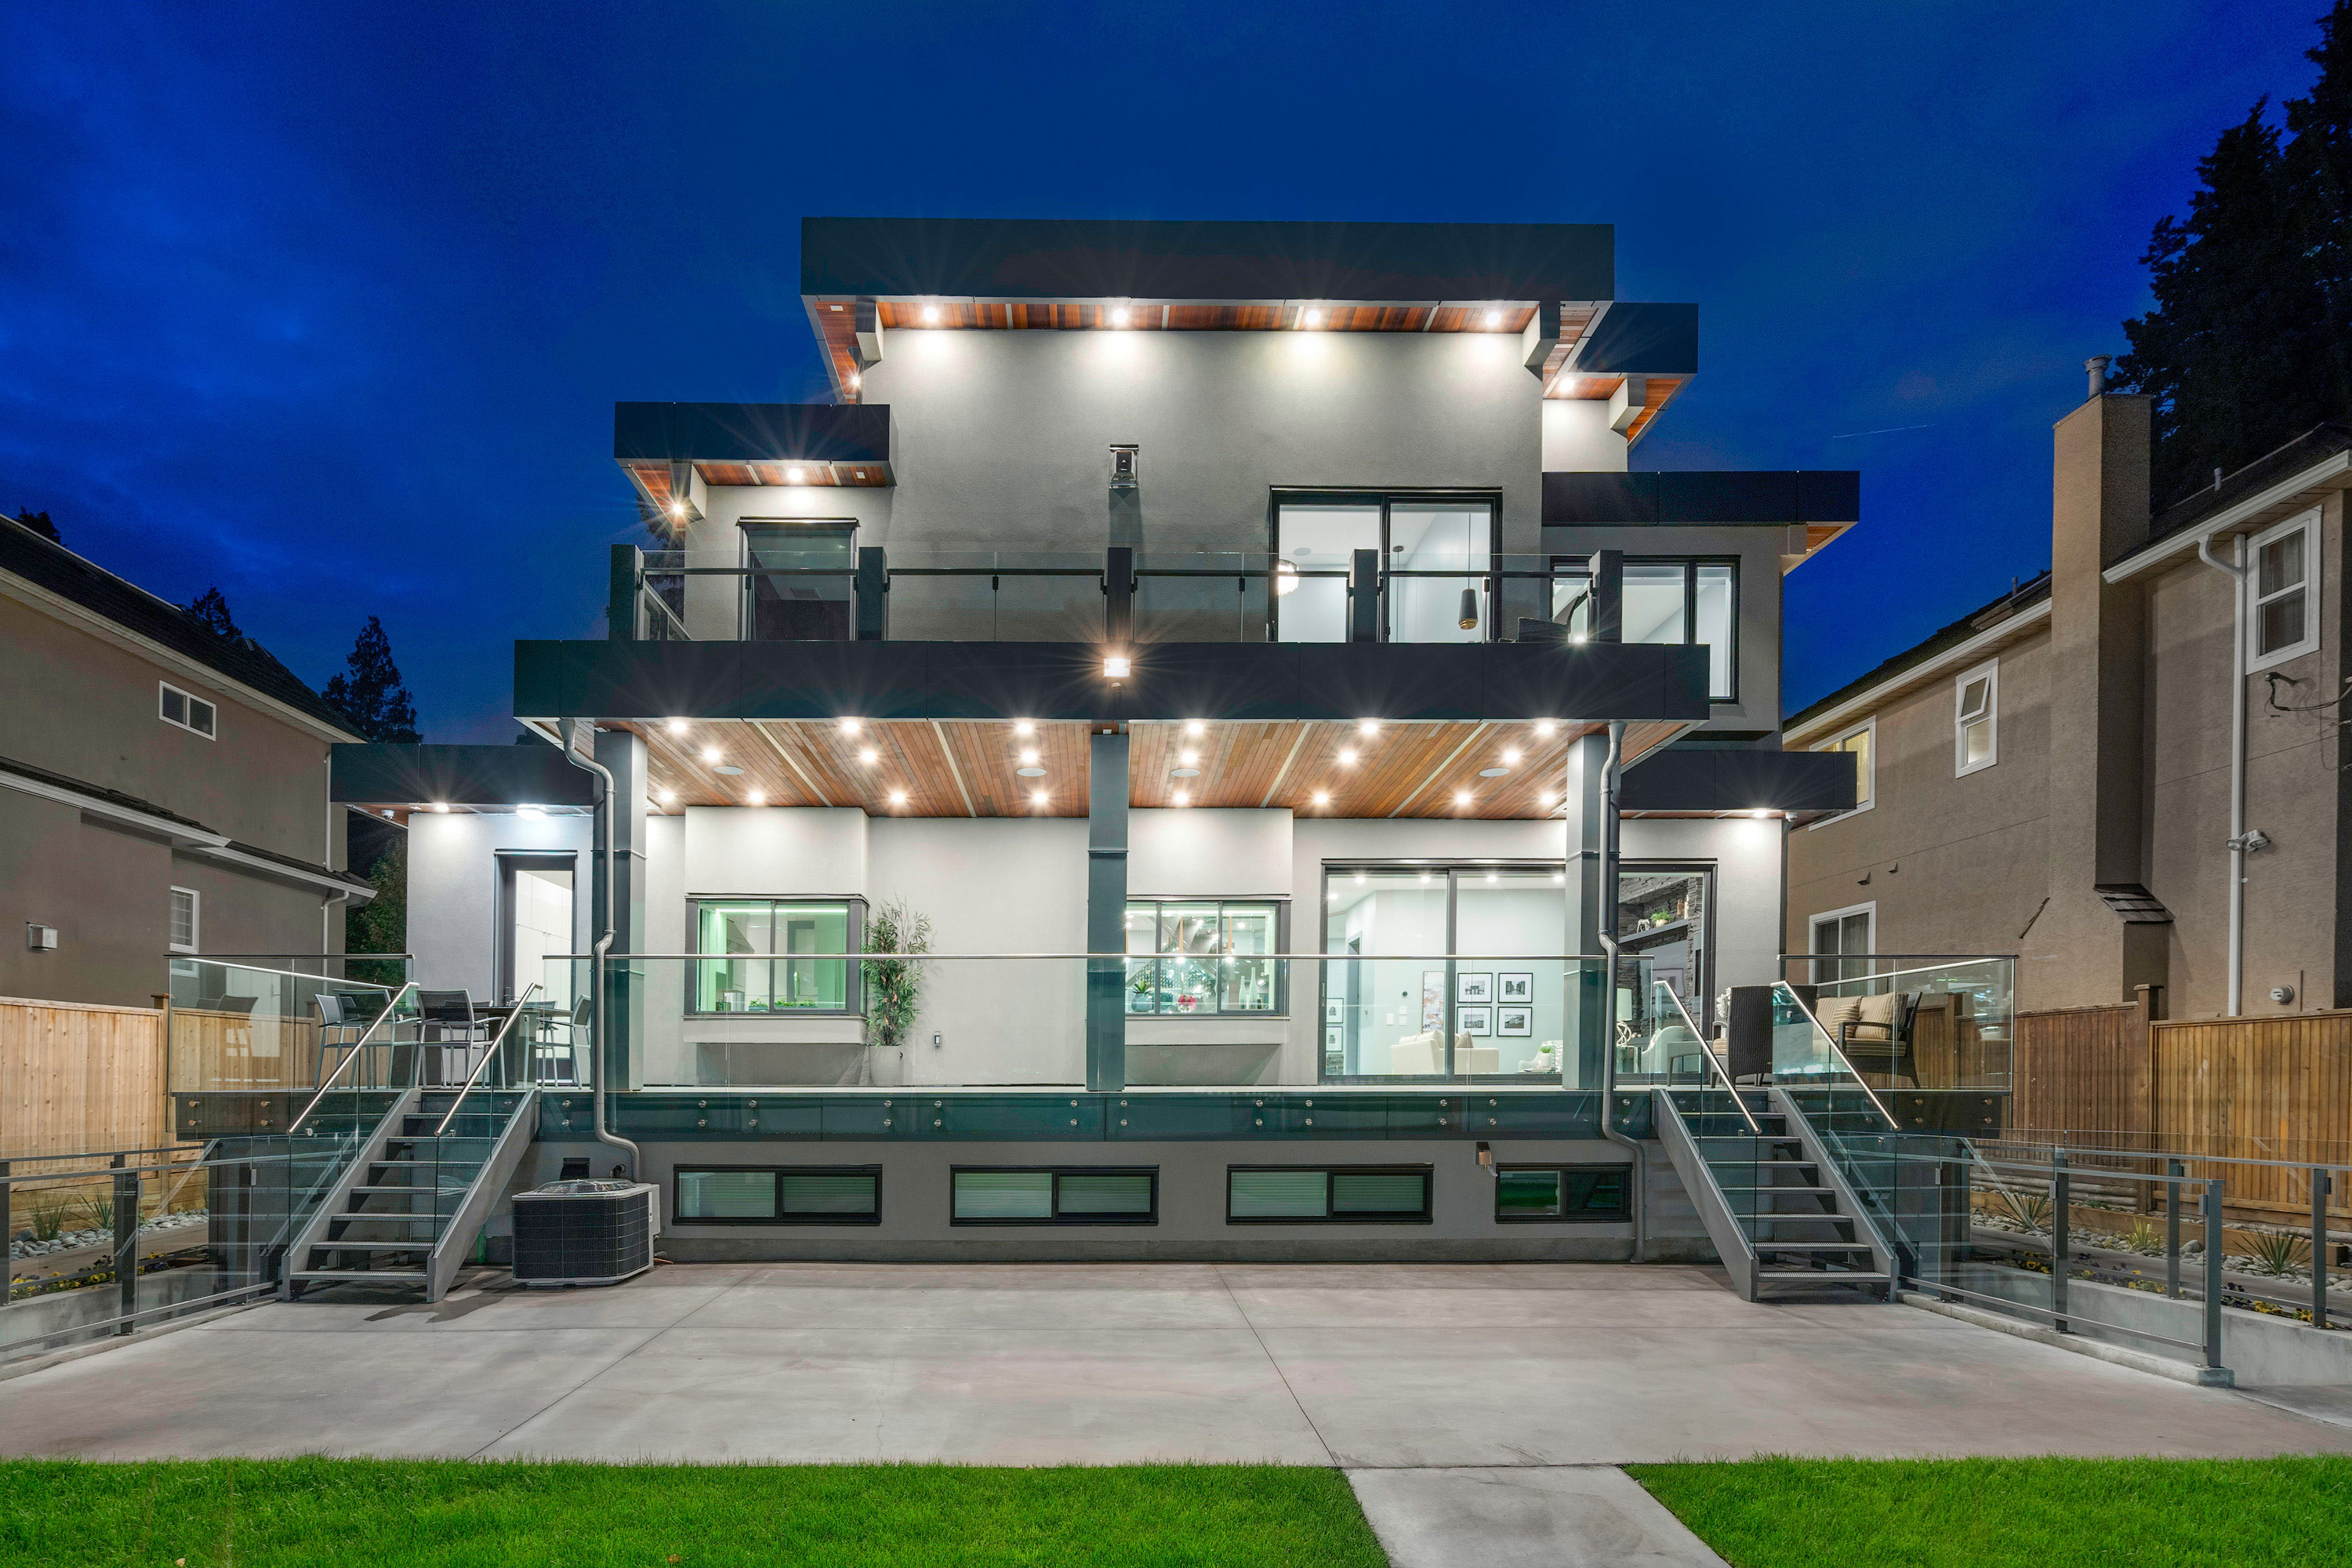 Excelsior Architectural Product, Residential, Home Design, ALPOLIC Metal Composite Material, MCM